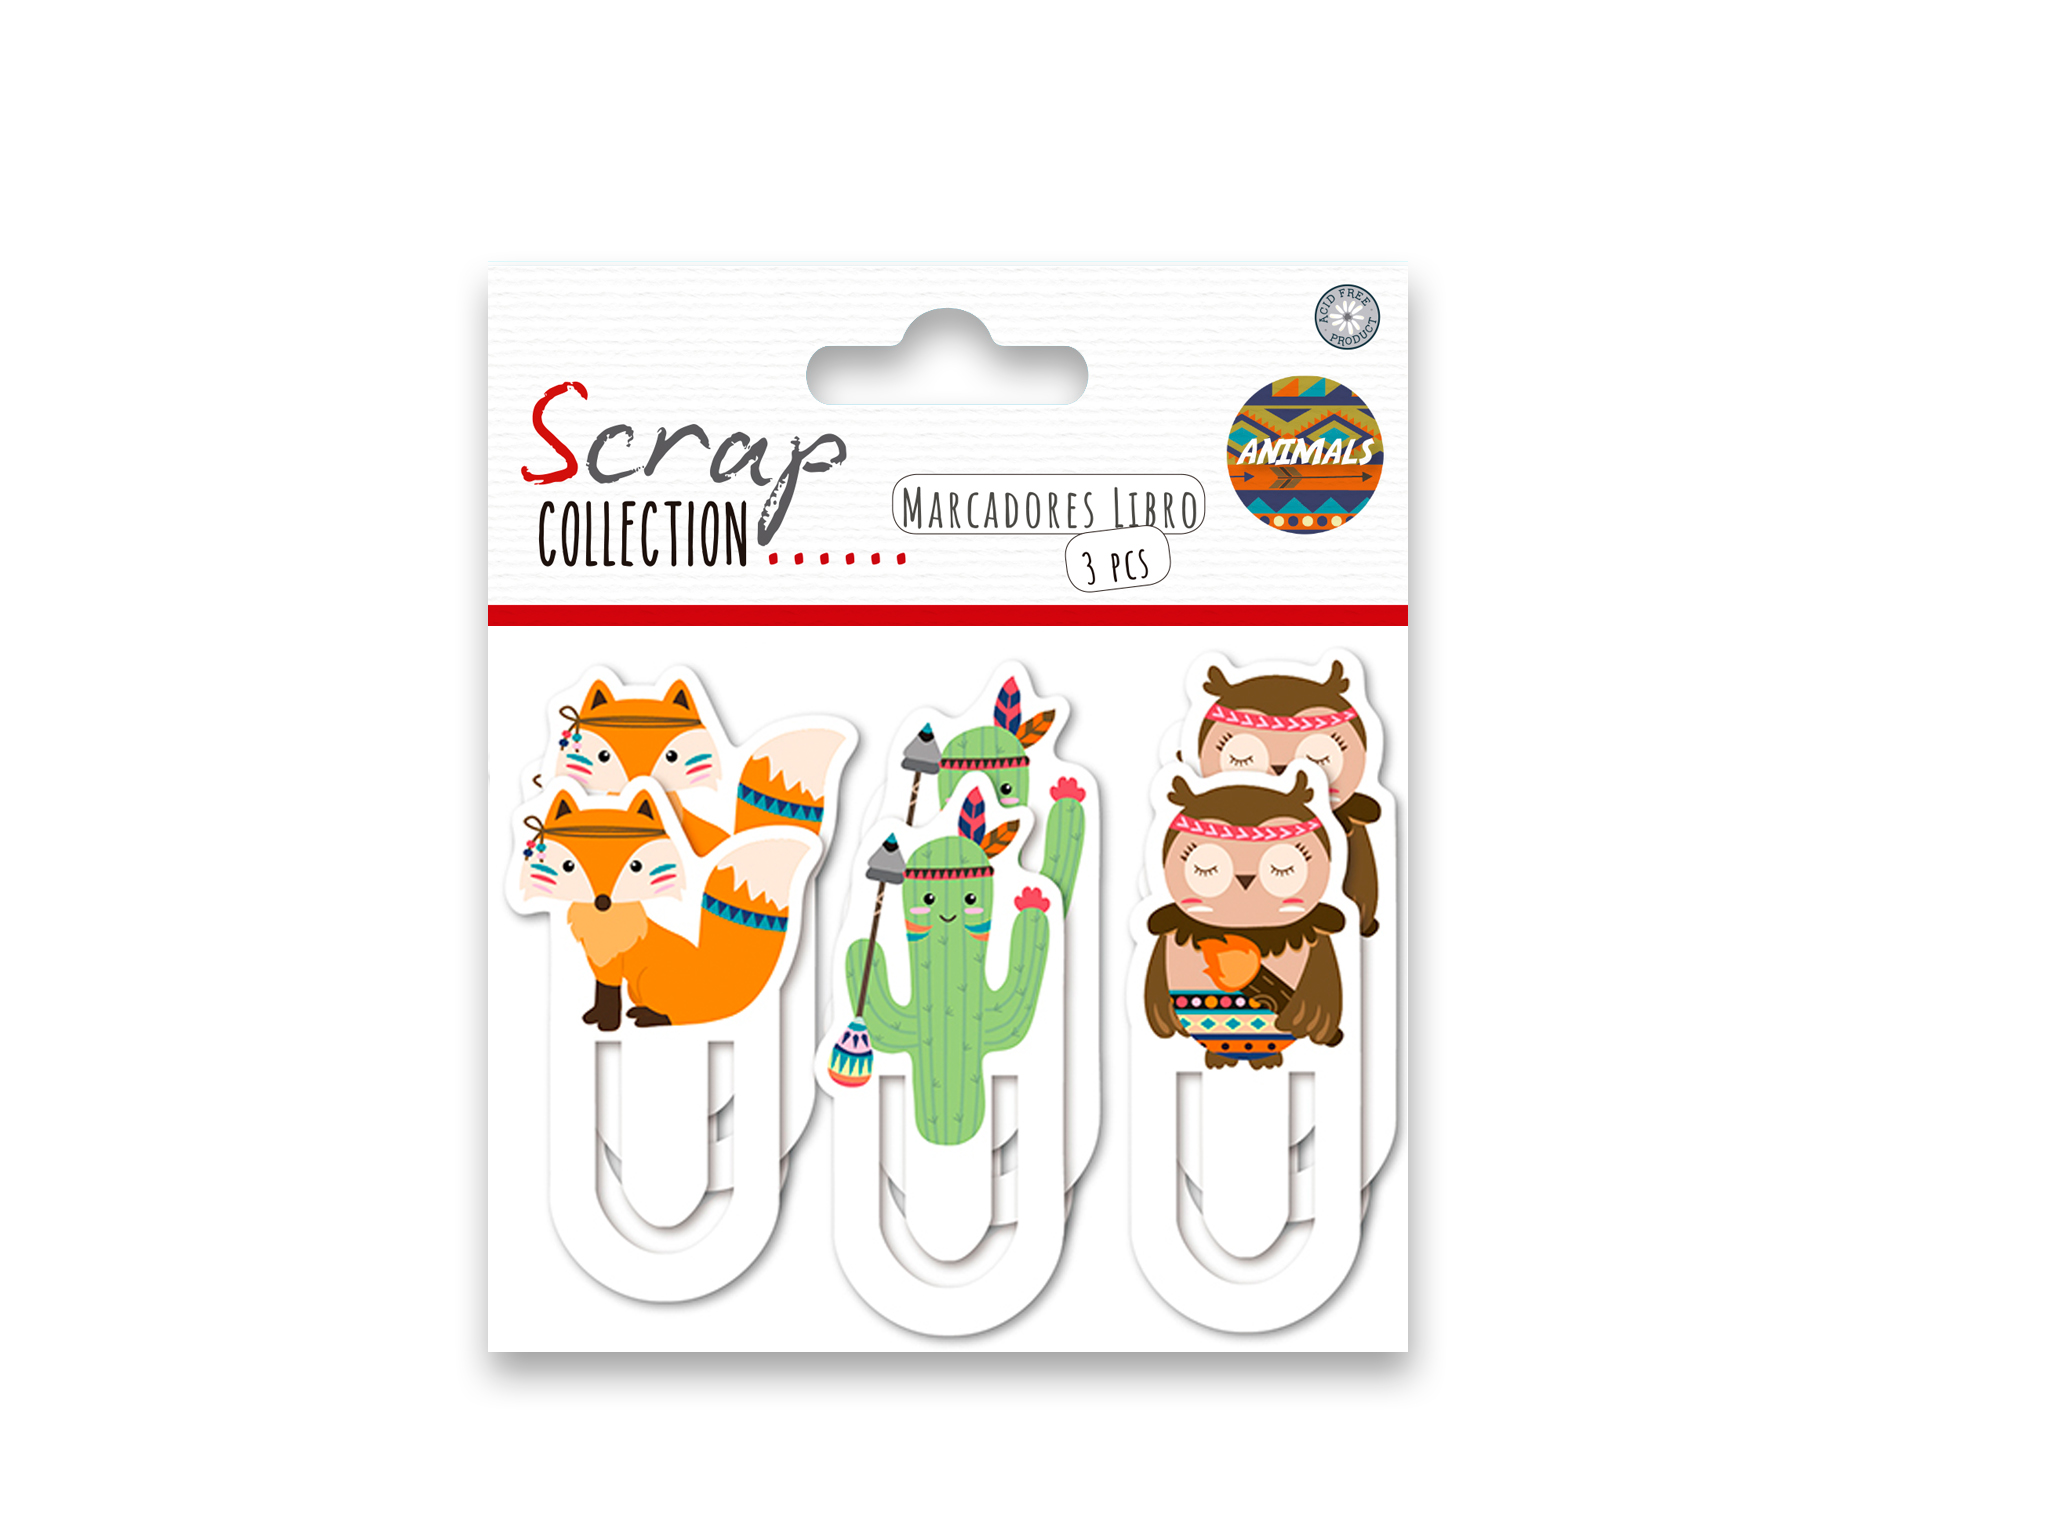 SET 15 MARCADORES LIBRO ANIMALS cod. 2501862